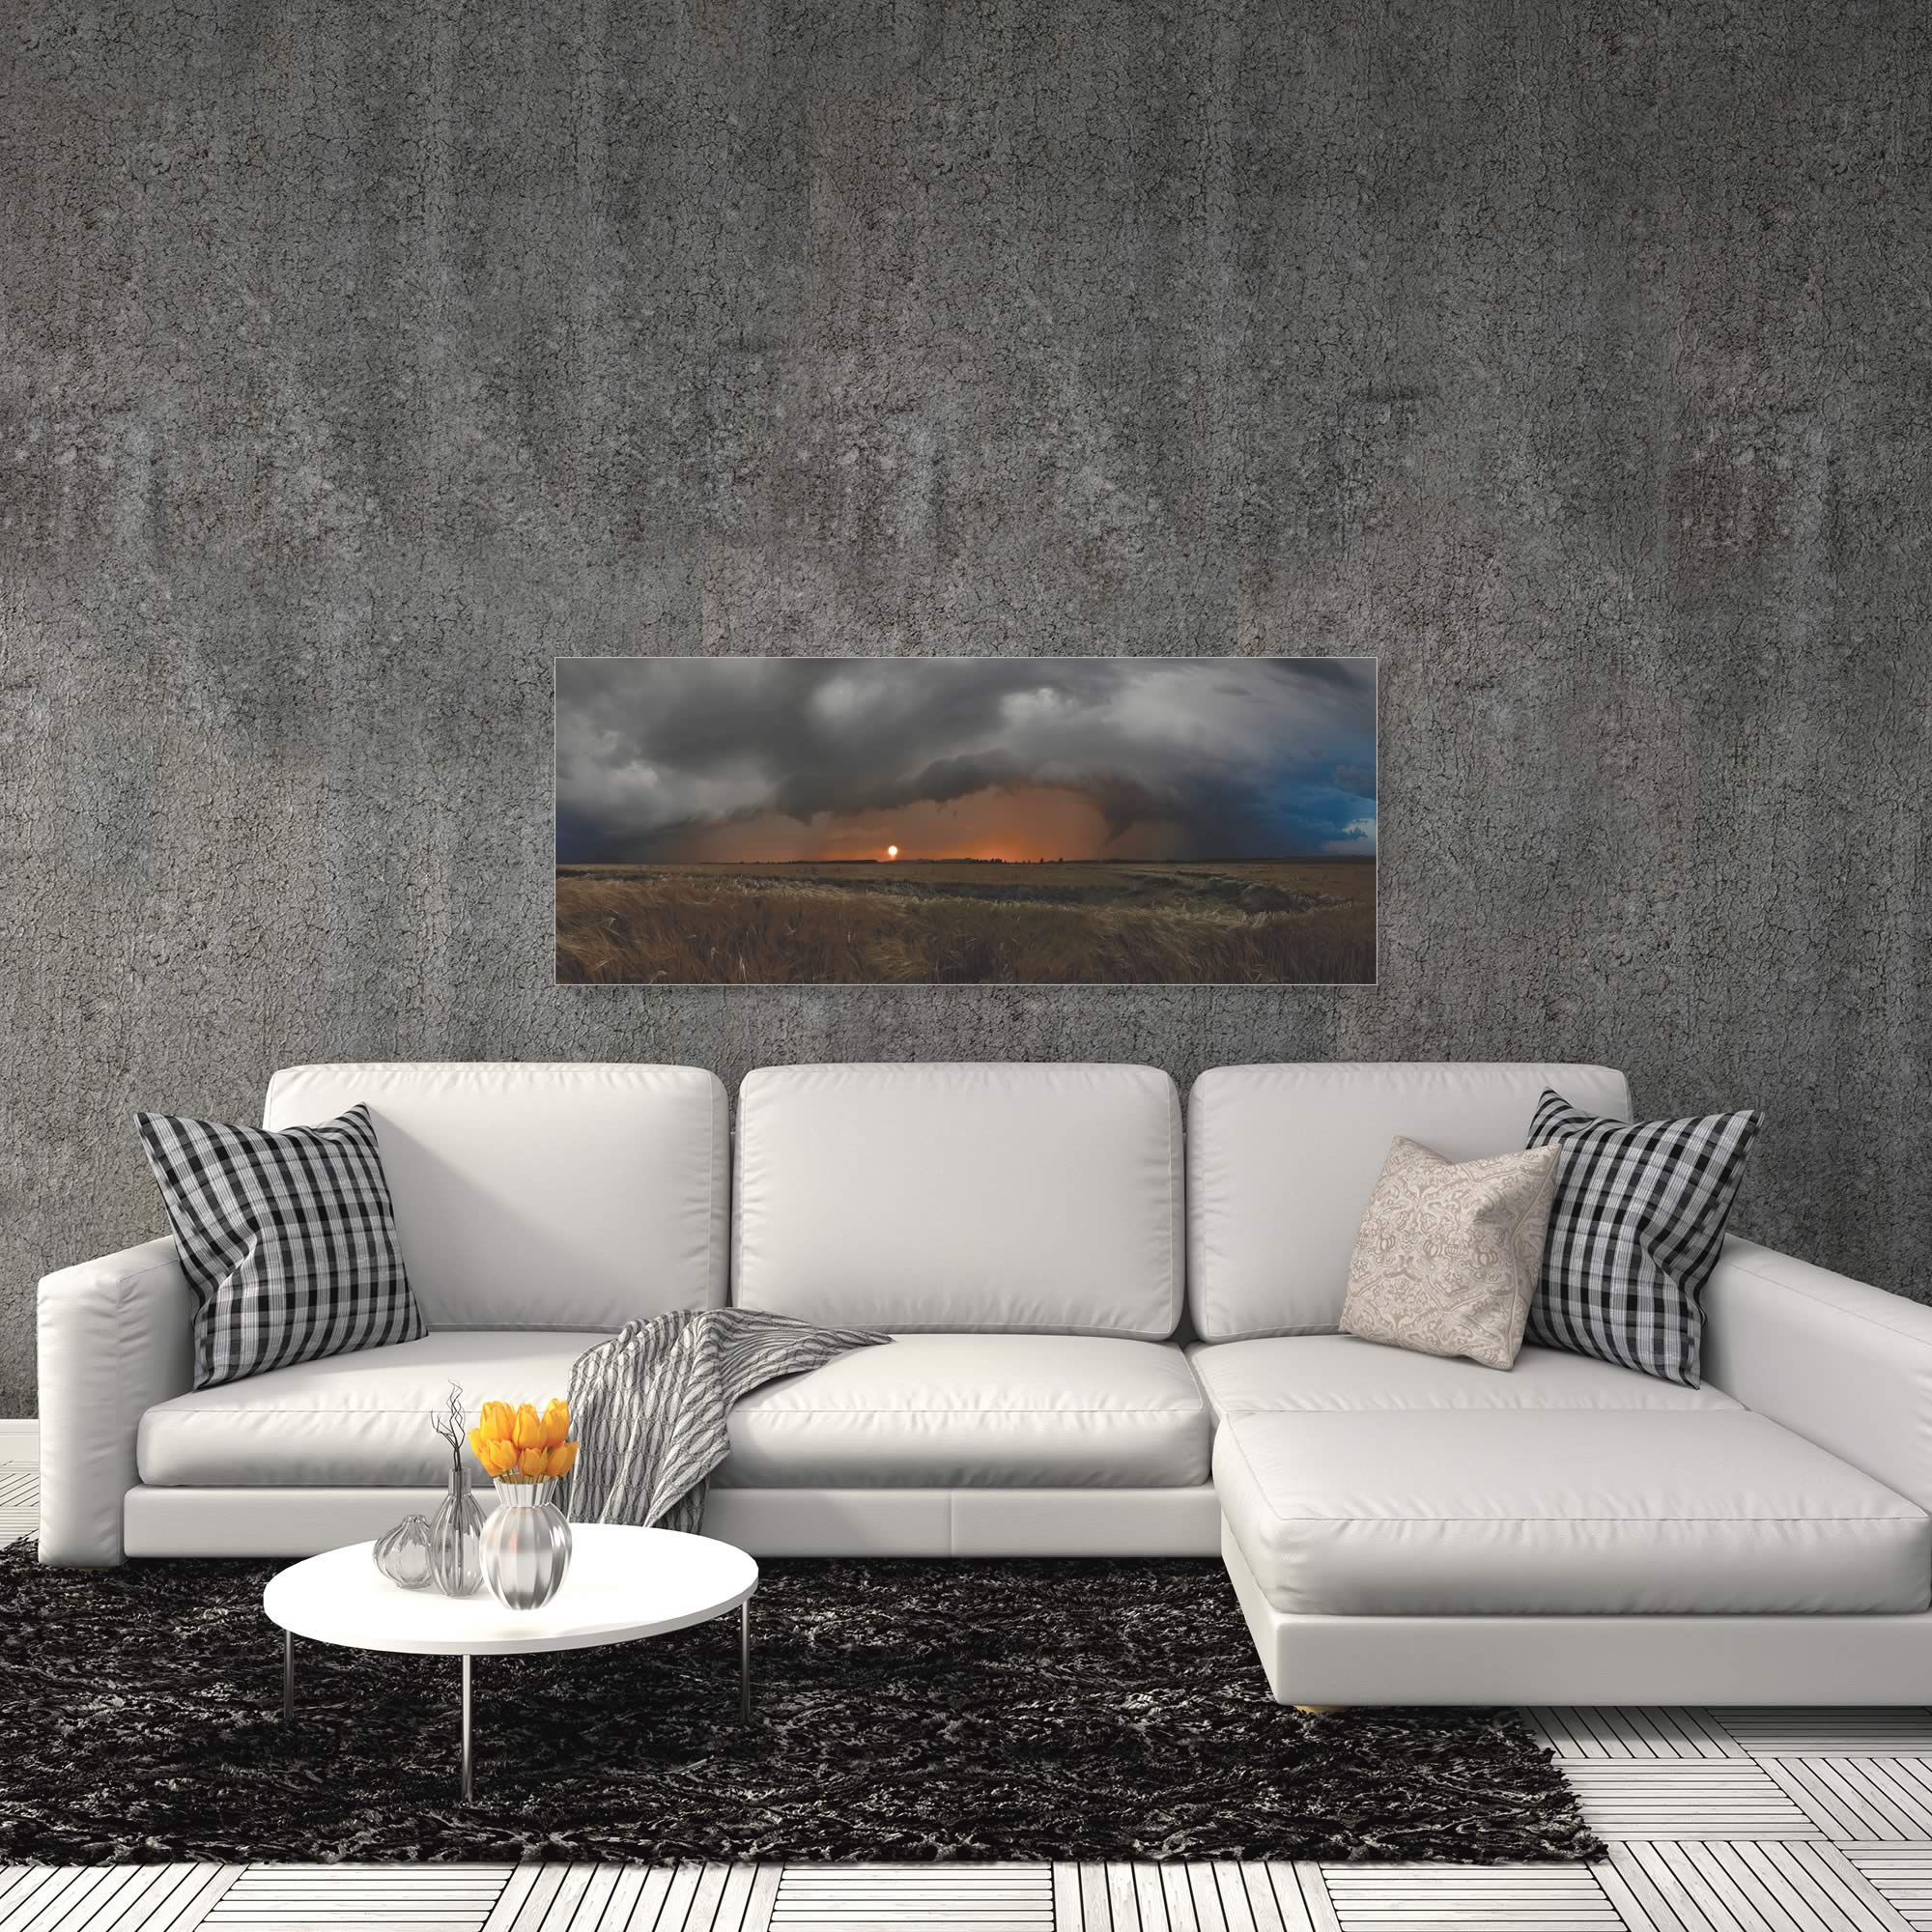 Plains of Fury by Franz Schumacher - Storm Pictures on Metal or Acrylic - Alternate View 1